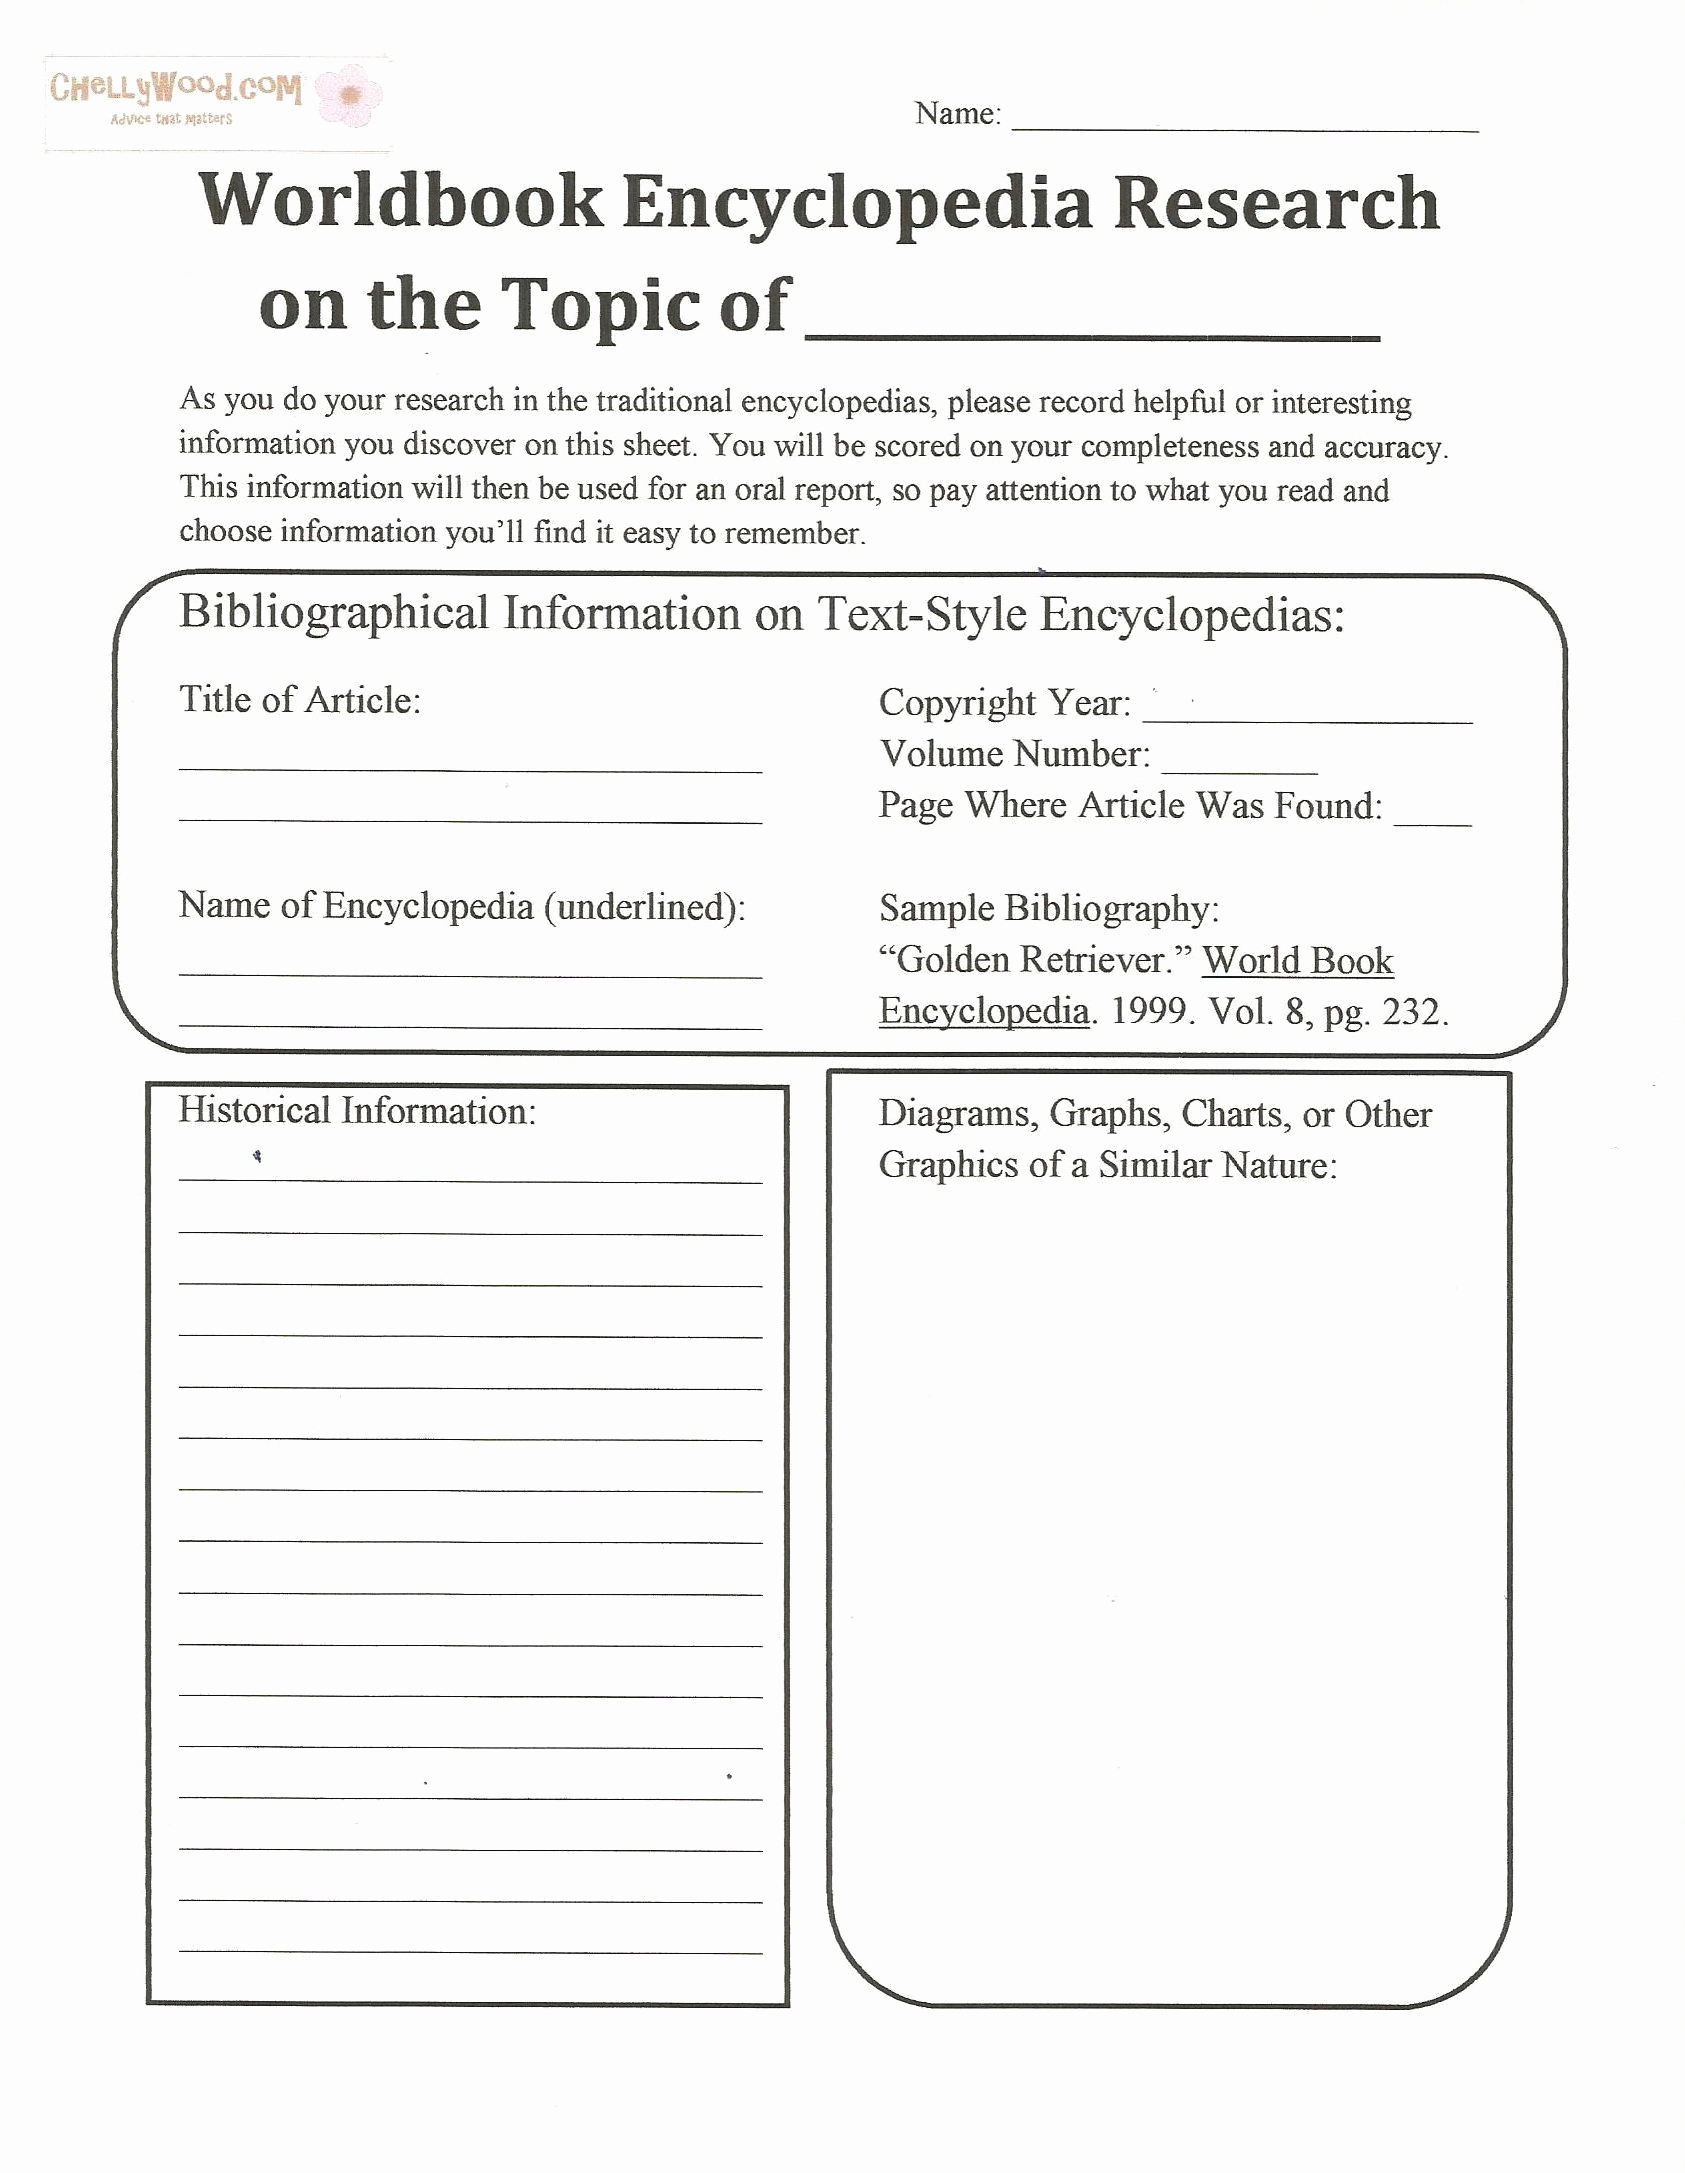 Bibliography Practice Worksheets Elegant Easily 20 Bibliography Practice Worksheets Worksheet